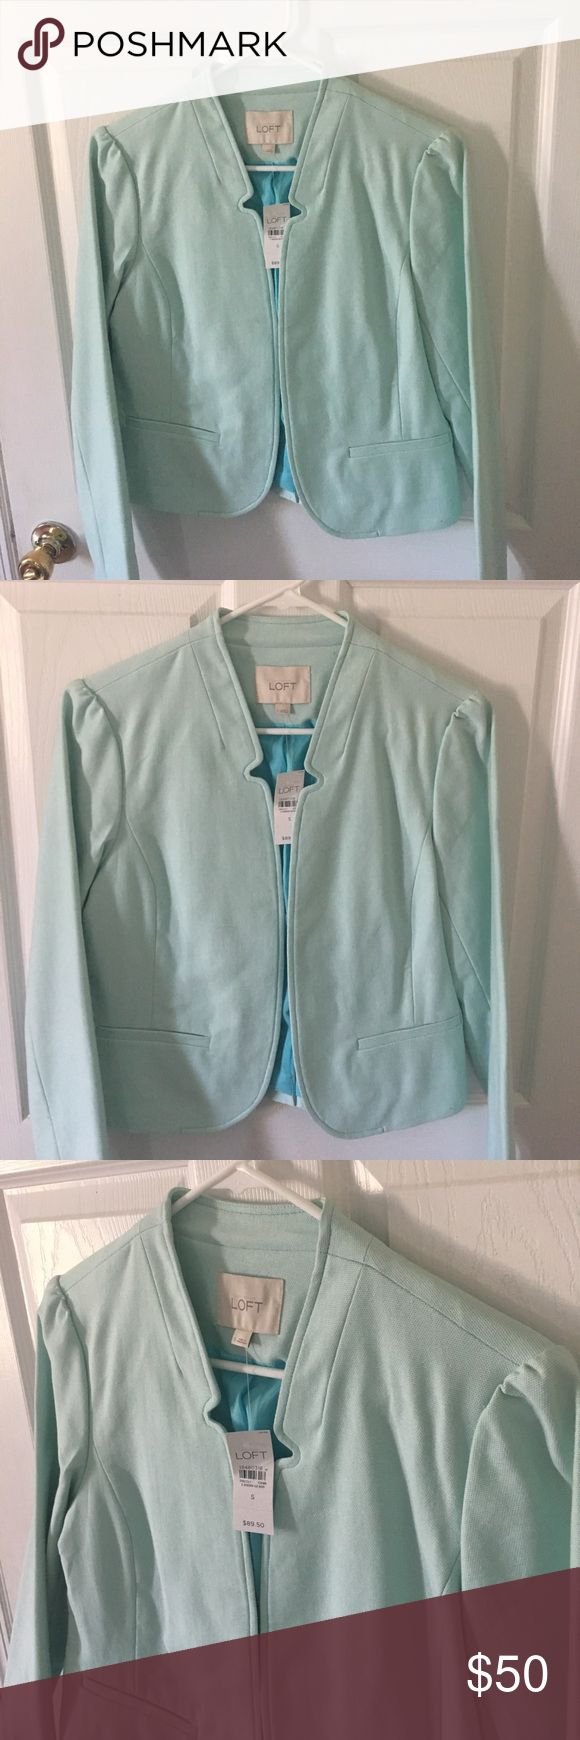 Loft Mint Green Blazer Size Small NWT Cotton Blazer, fully lined with pockets. Beautiful Mint Green color, perfect for spring! NWT LOFT Jackets & Coats Blazers